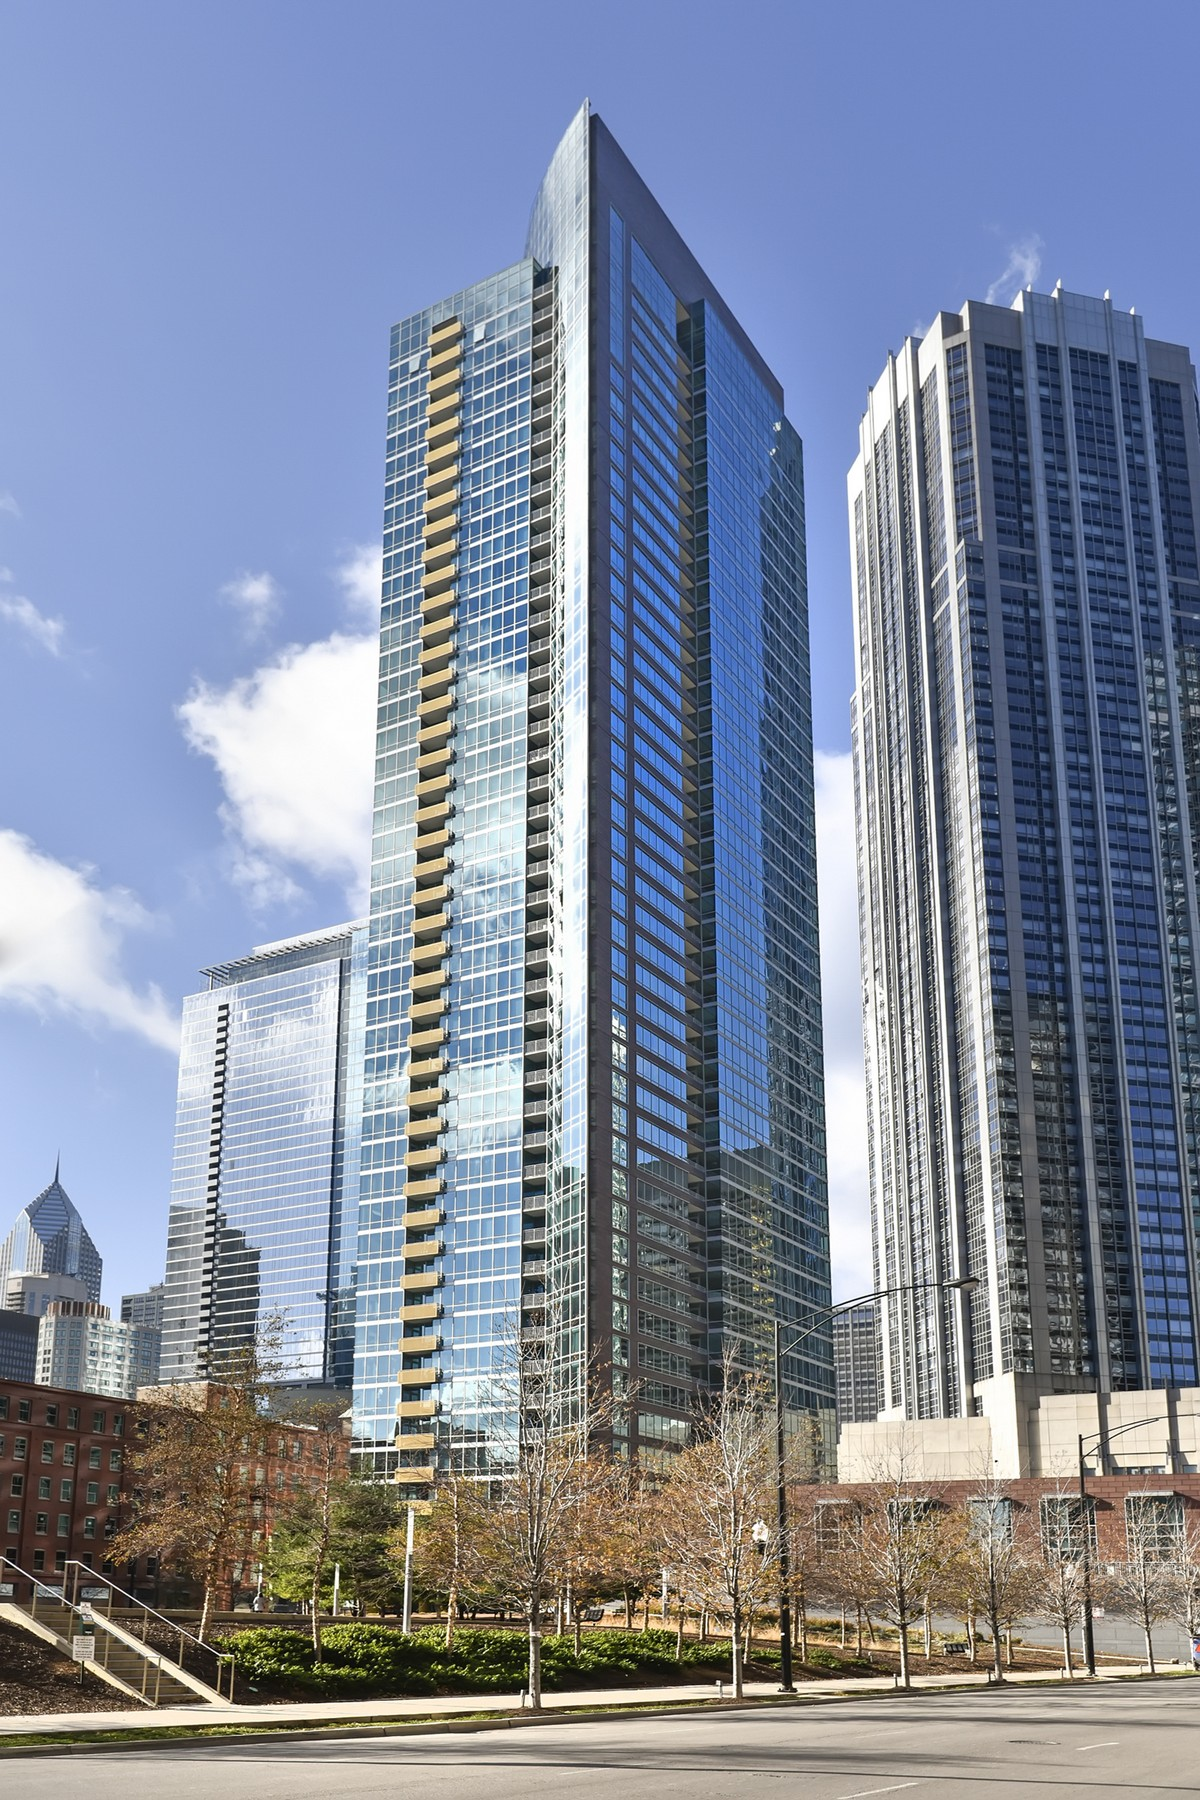 Single Family Home for Sale at Fabulous Unit With Great Views 505 N Mcclurg Court Unit 1204 Chicago, Illinois, 60611 United States